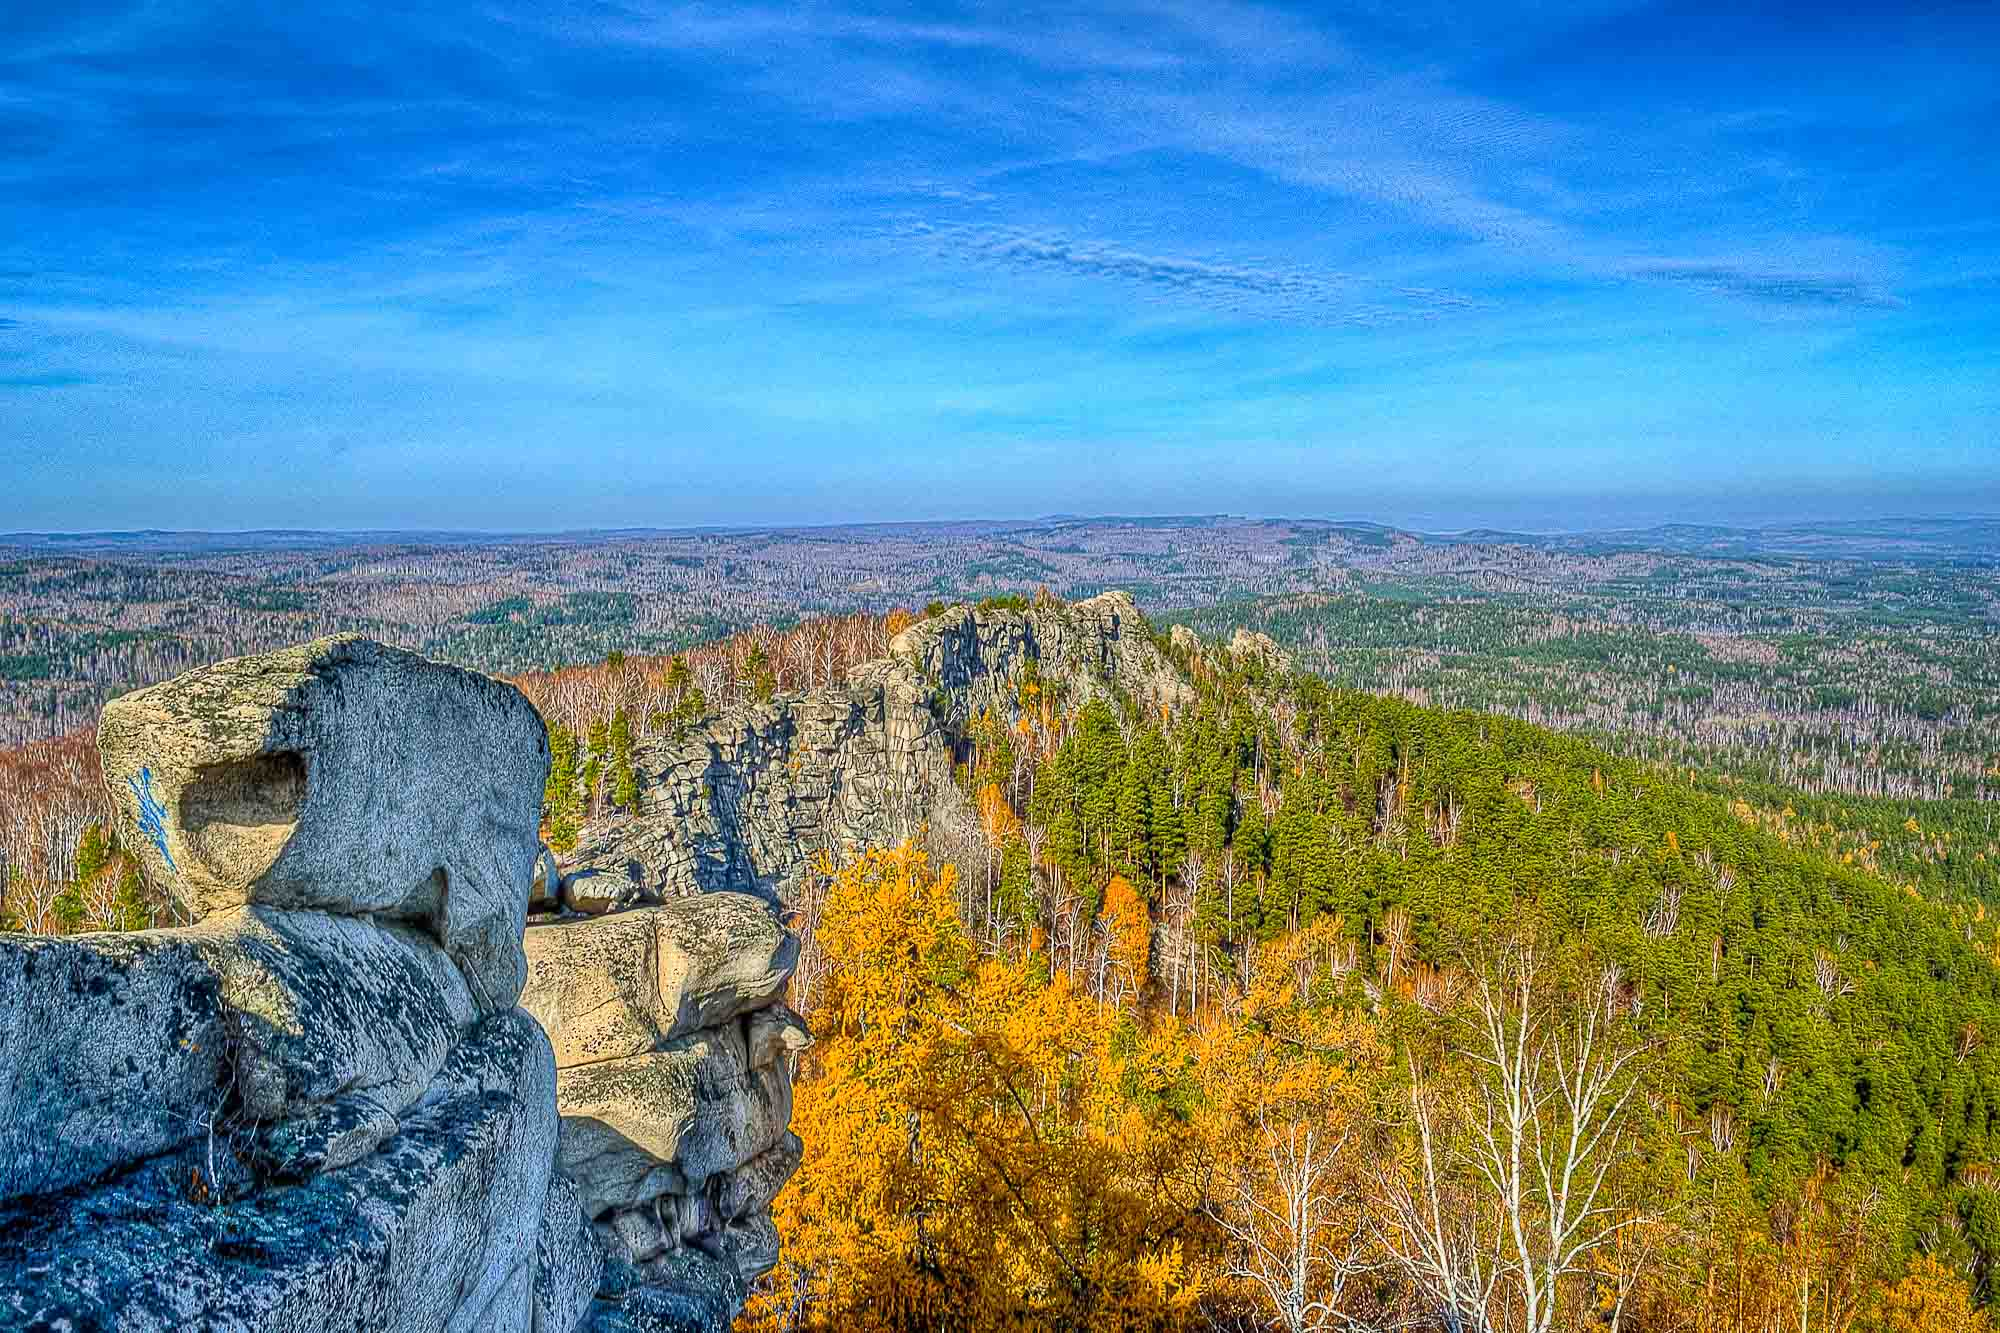 Ural Mountains divide Russia into Europe and Asia